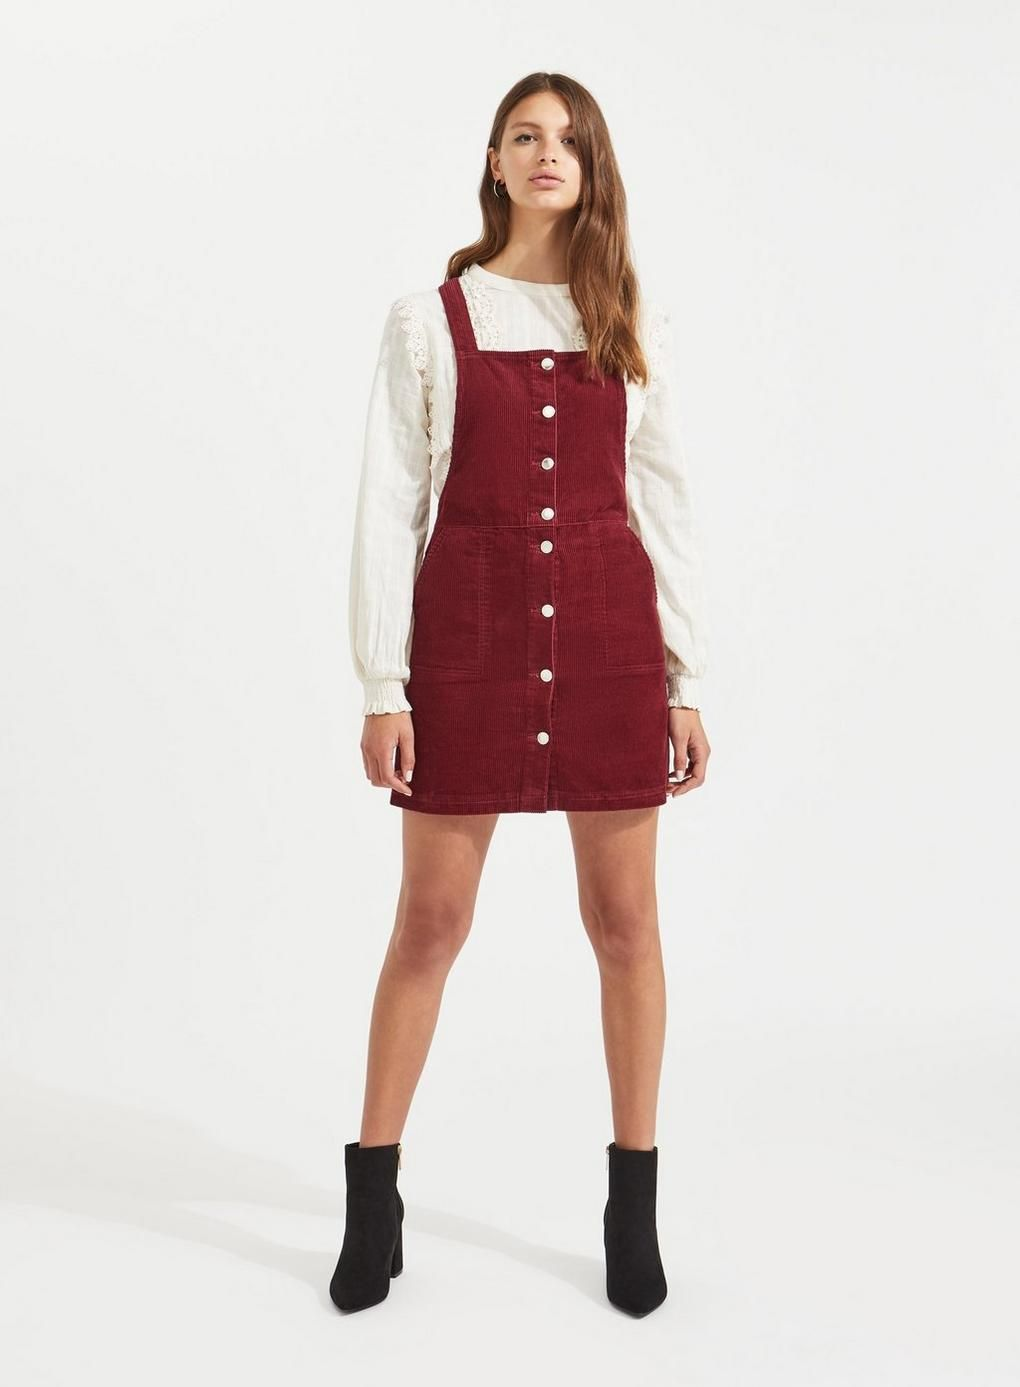 afd53c3697bde Burgundy Button Cord Pinafore Dress | What to Wear Now ! in 2019 ...